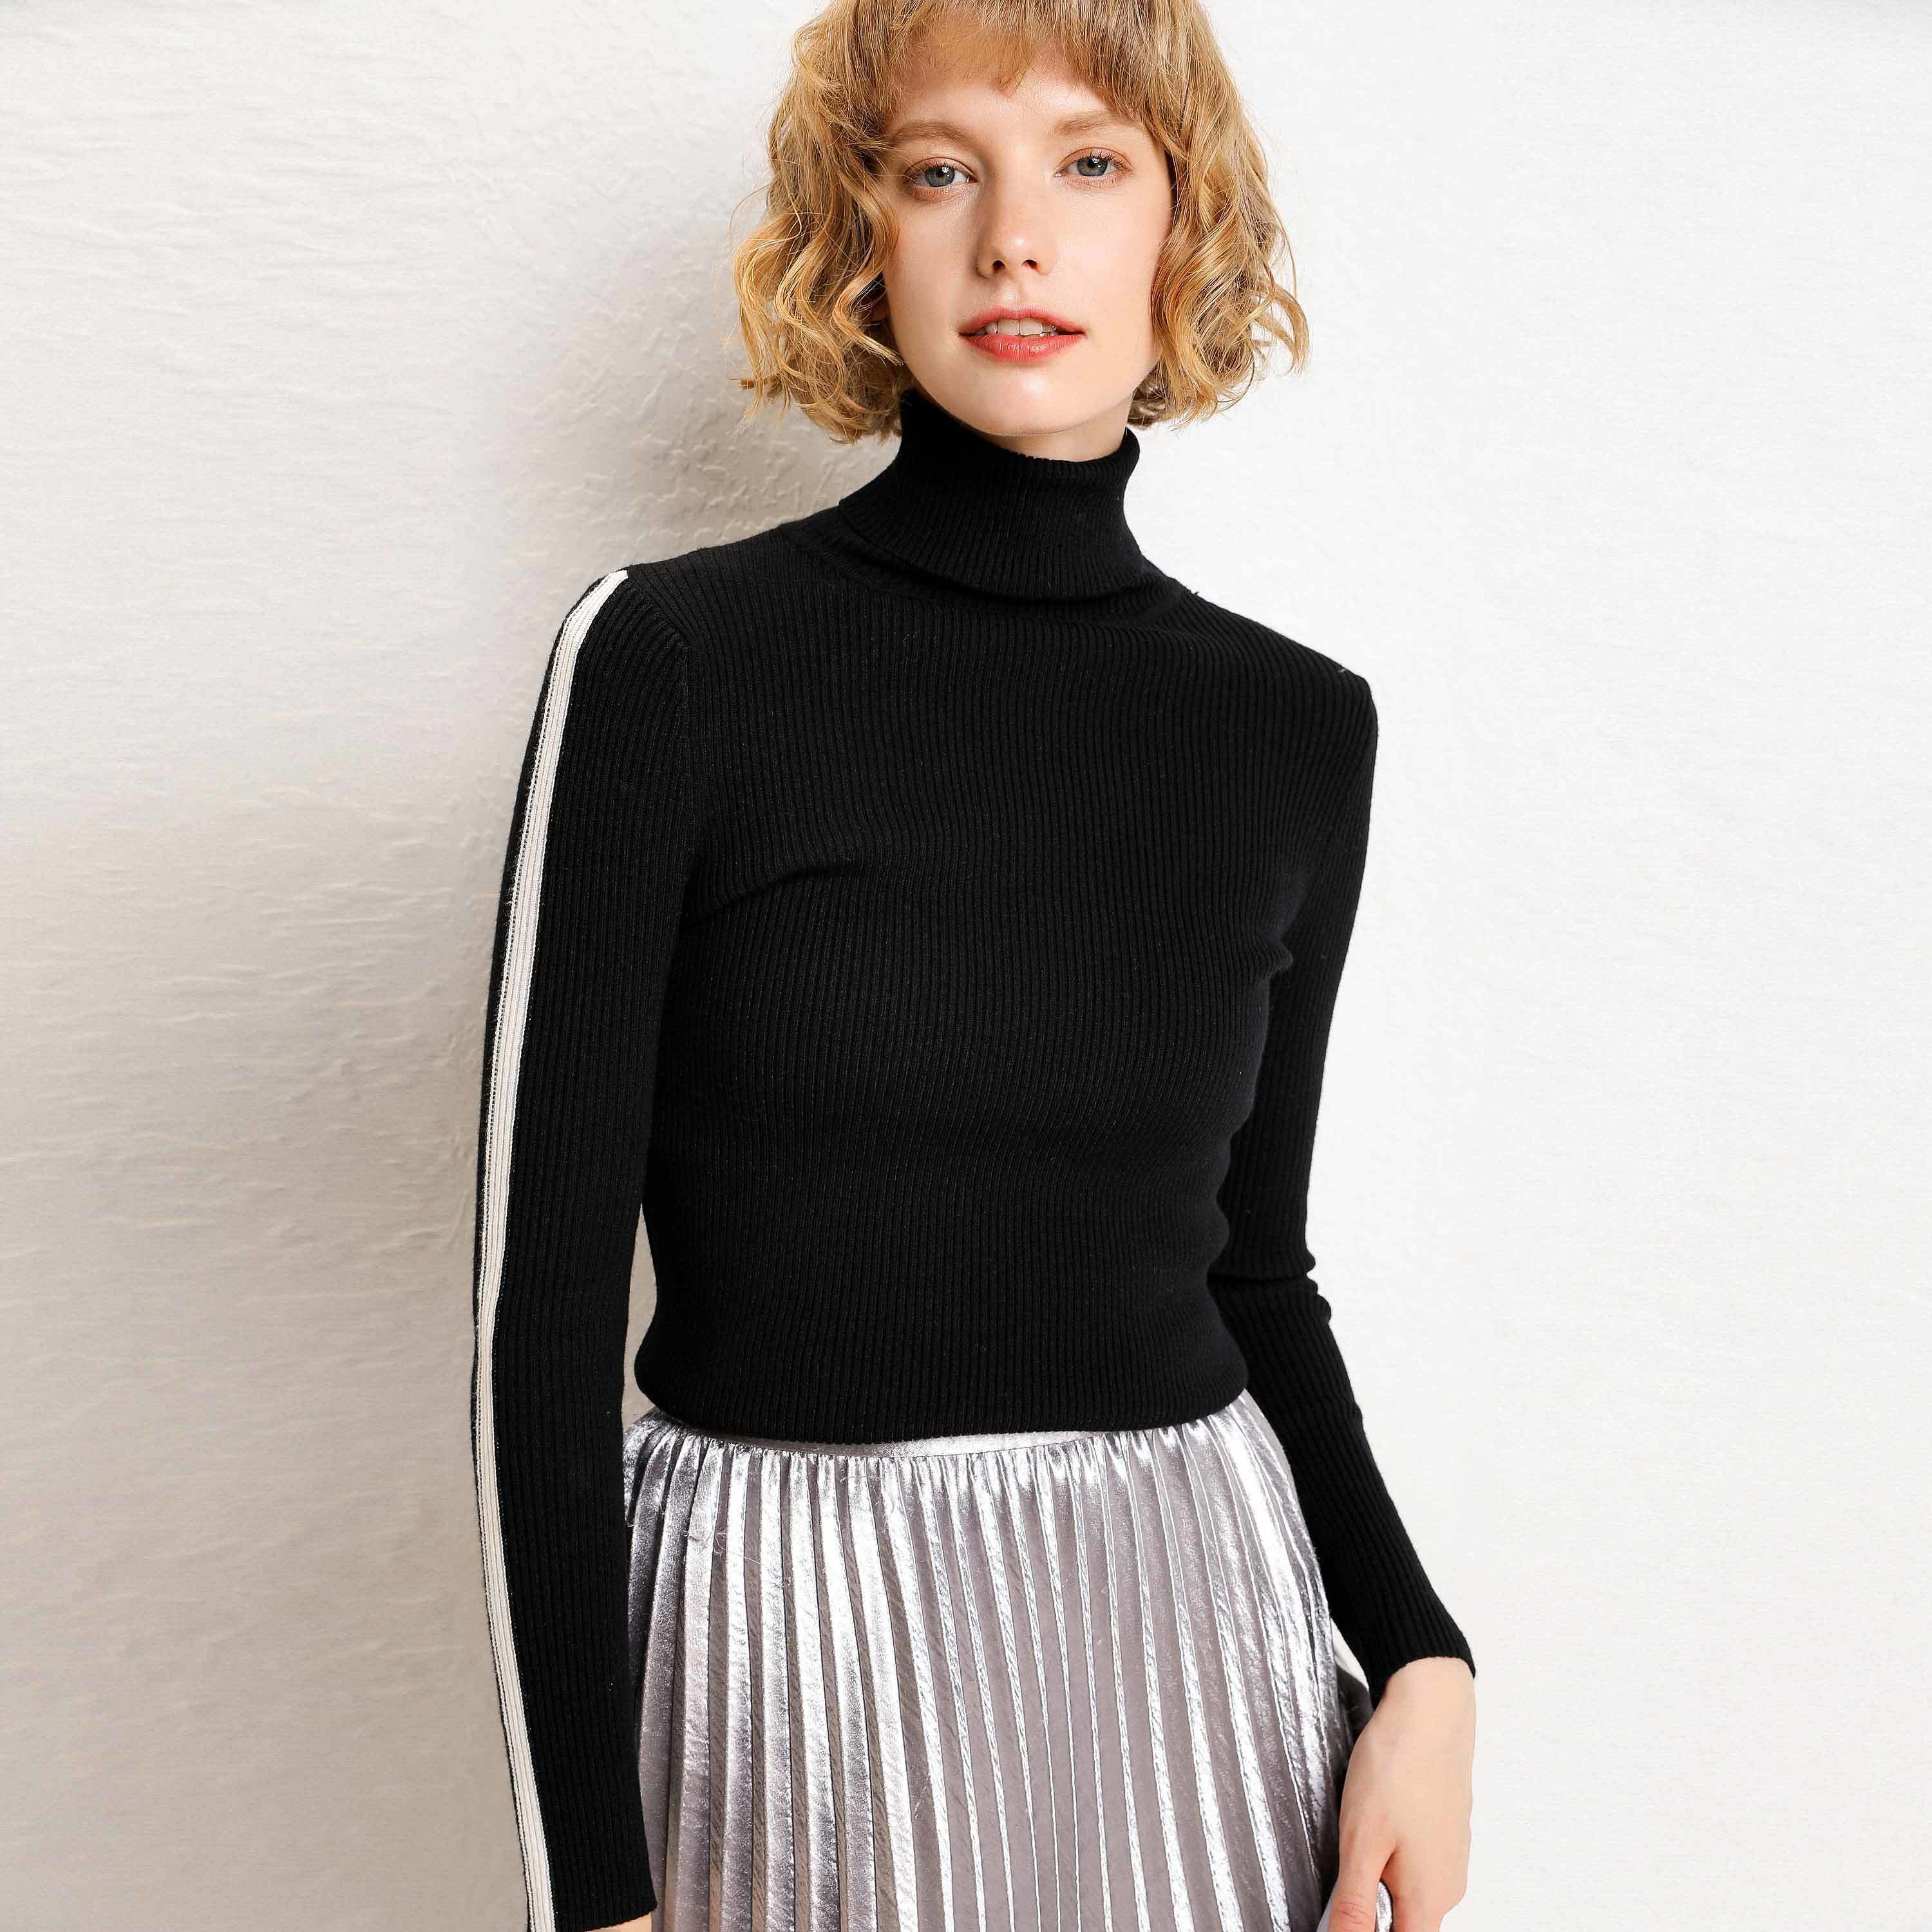 Slender Women's Sweaters With Tall Necks Provo New Winter Ladies In Bottoms In Autumn 2019